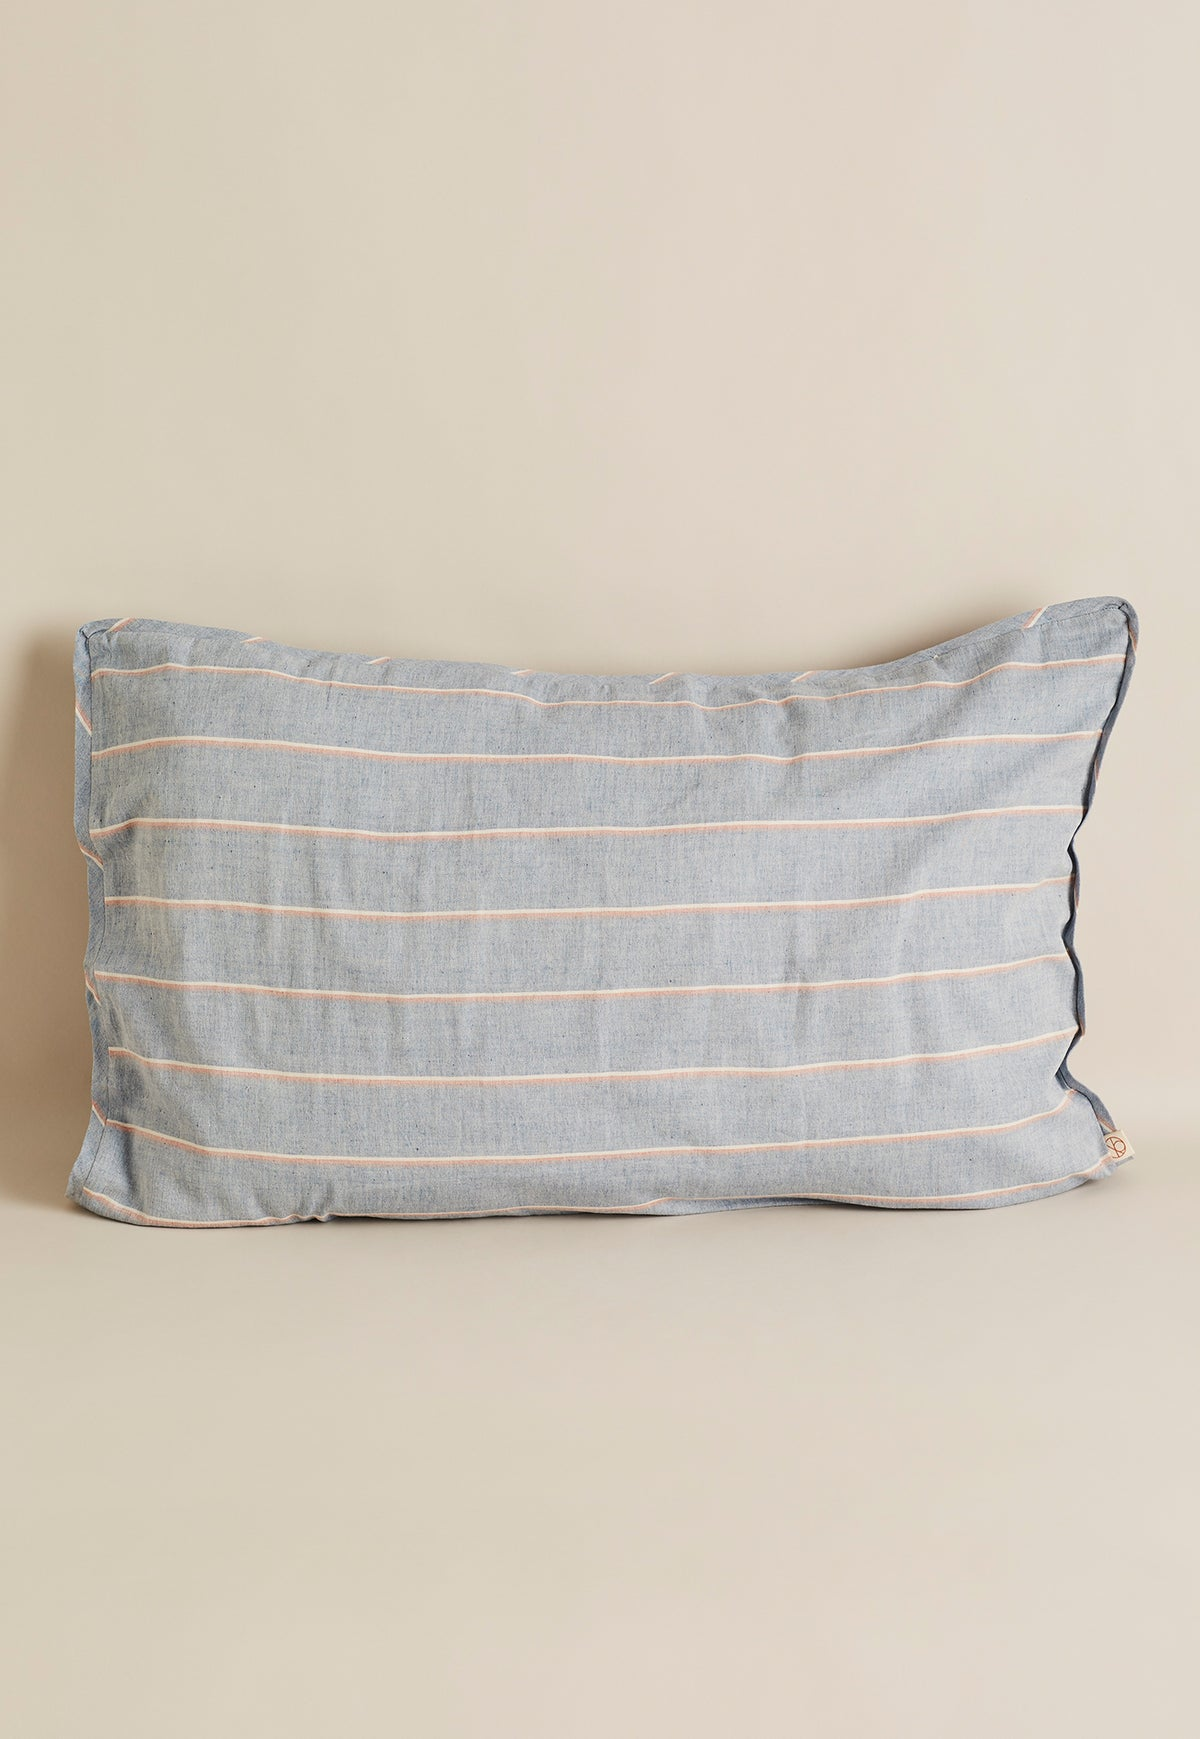 Pillow Case - Wide Stripe